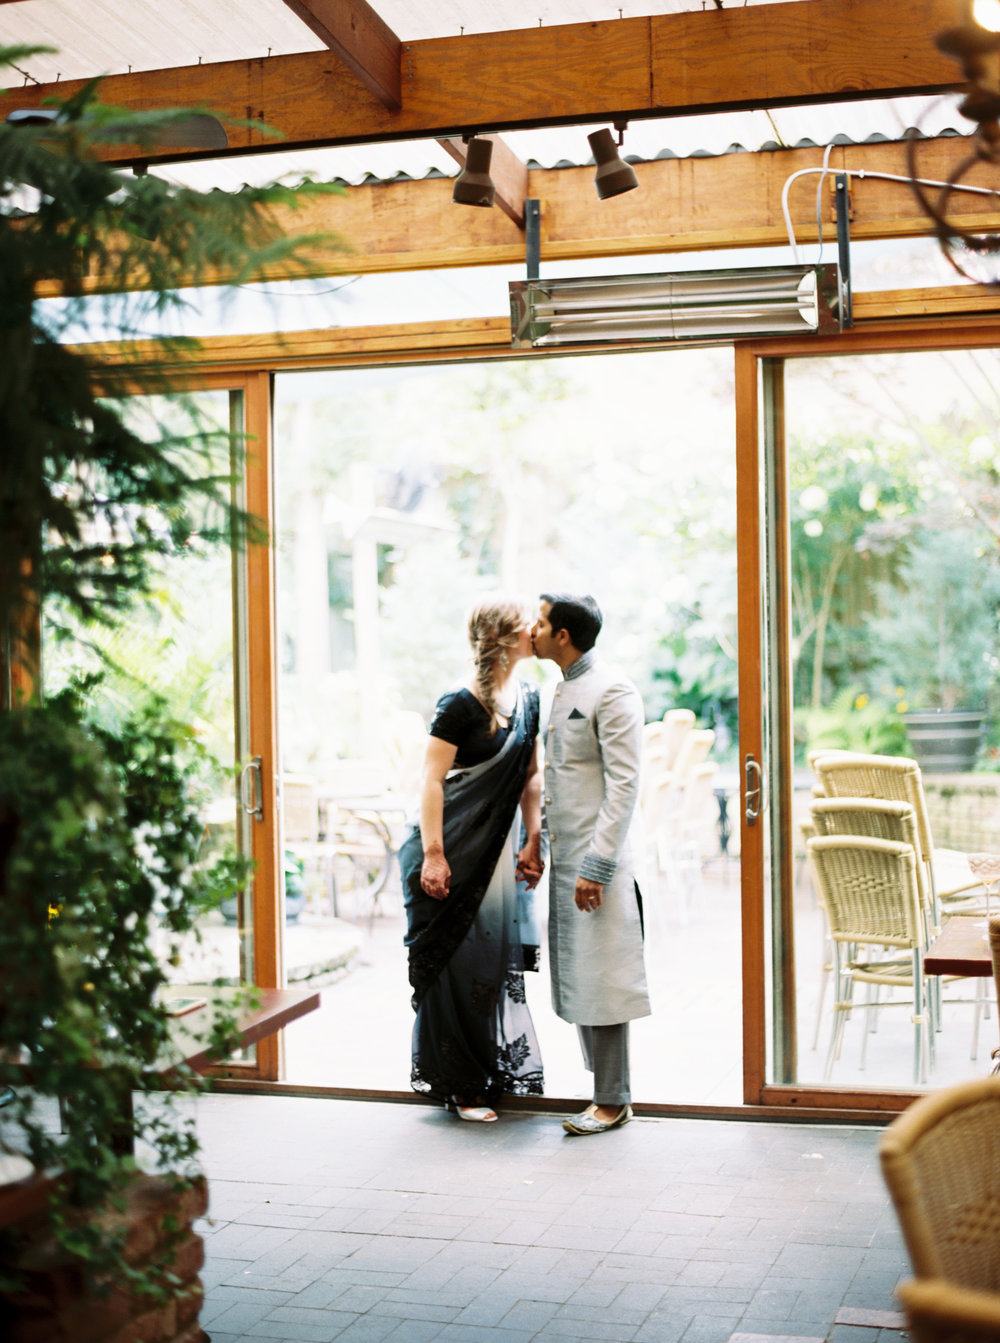 Wahoo_Grill_Atlanta_Indian_Wedding_Abigail_Malone_Photgoraphy_FIlm-136.jpg